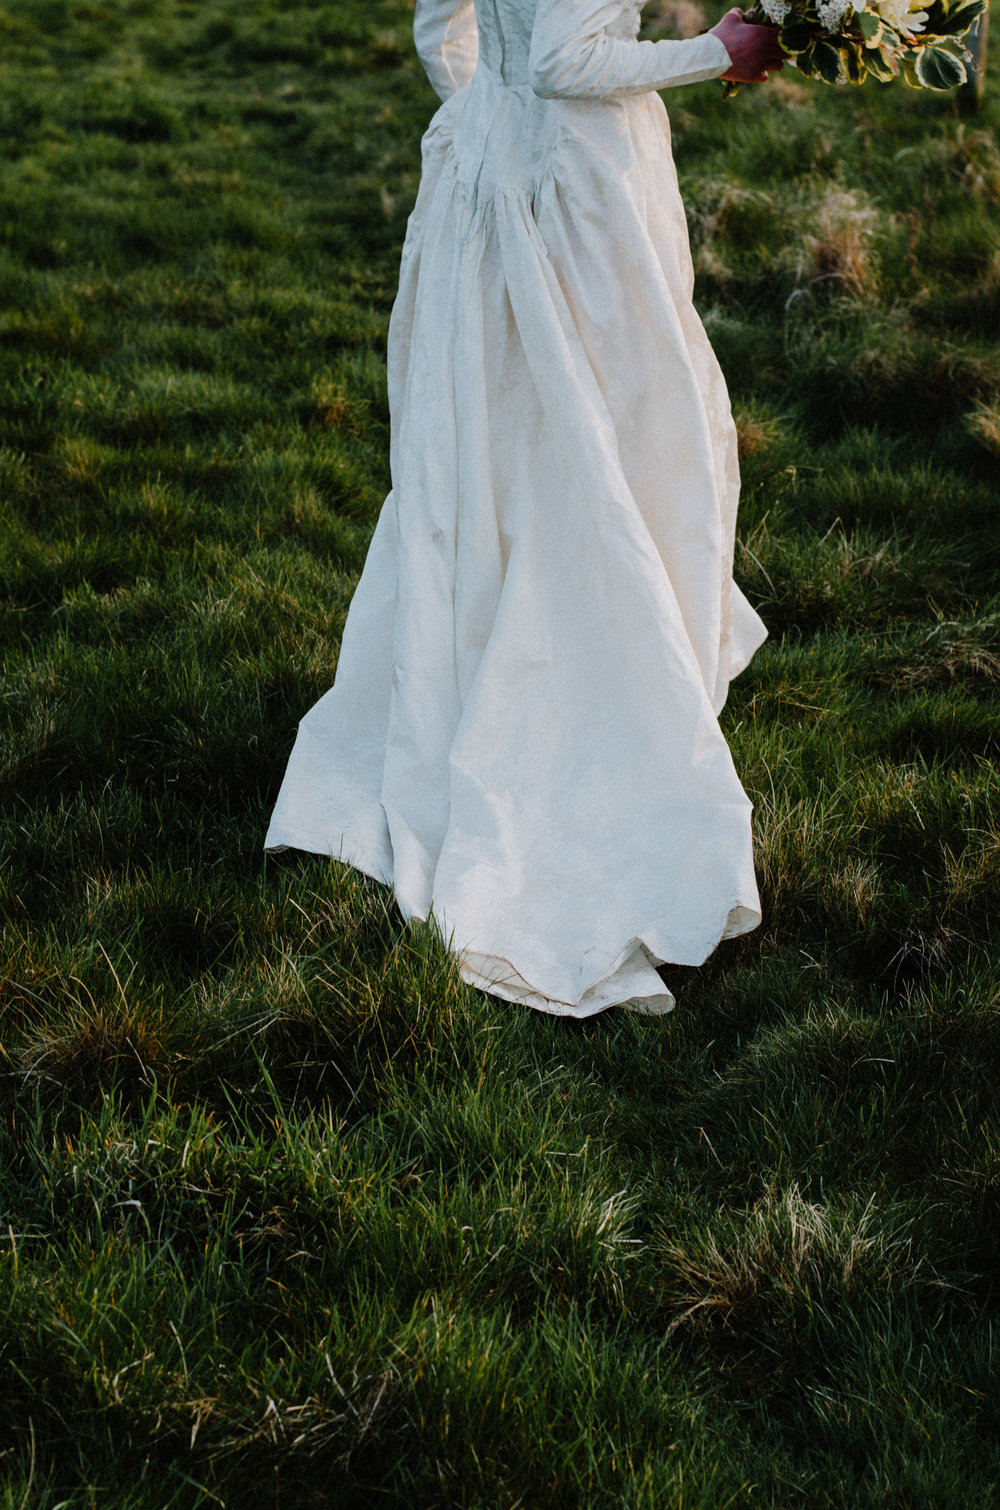 Bridal - Cuckmere Haven 2018 - Aiste Saulyte Photography-54.jpg